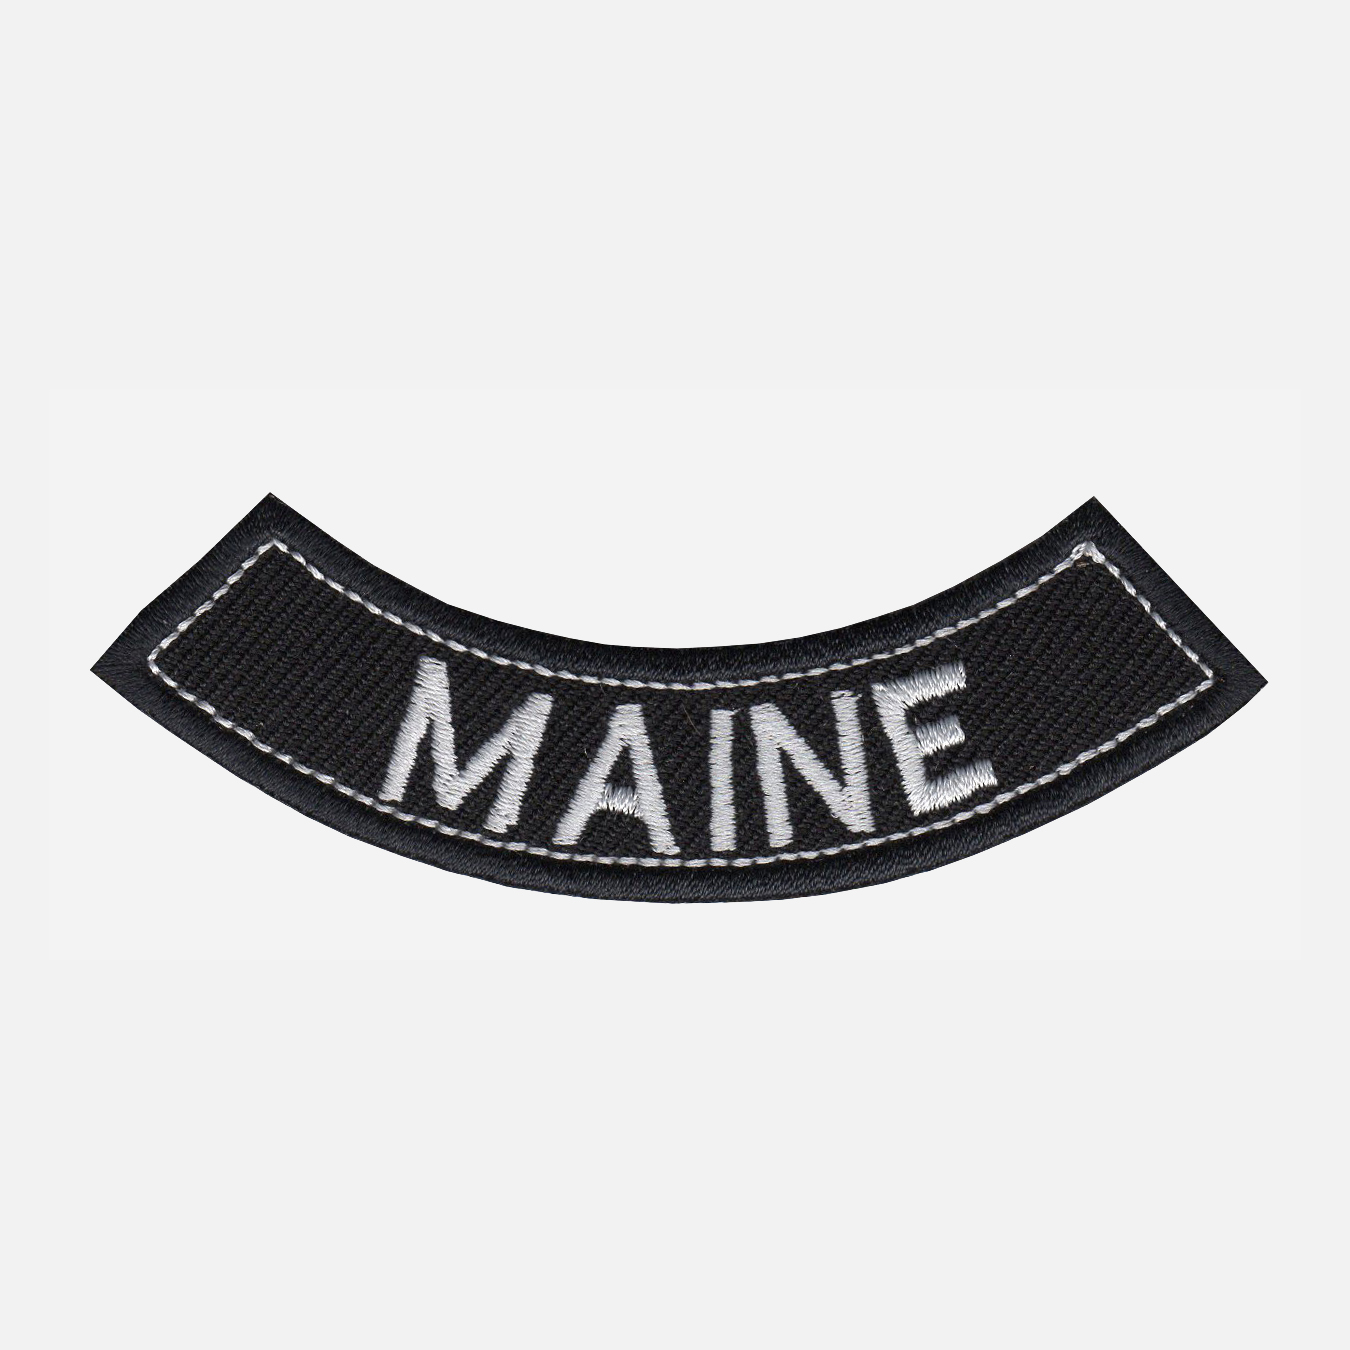 Maine Mini Bottom Rocker Embroidered Vest Patch